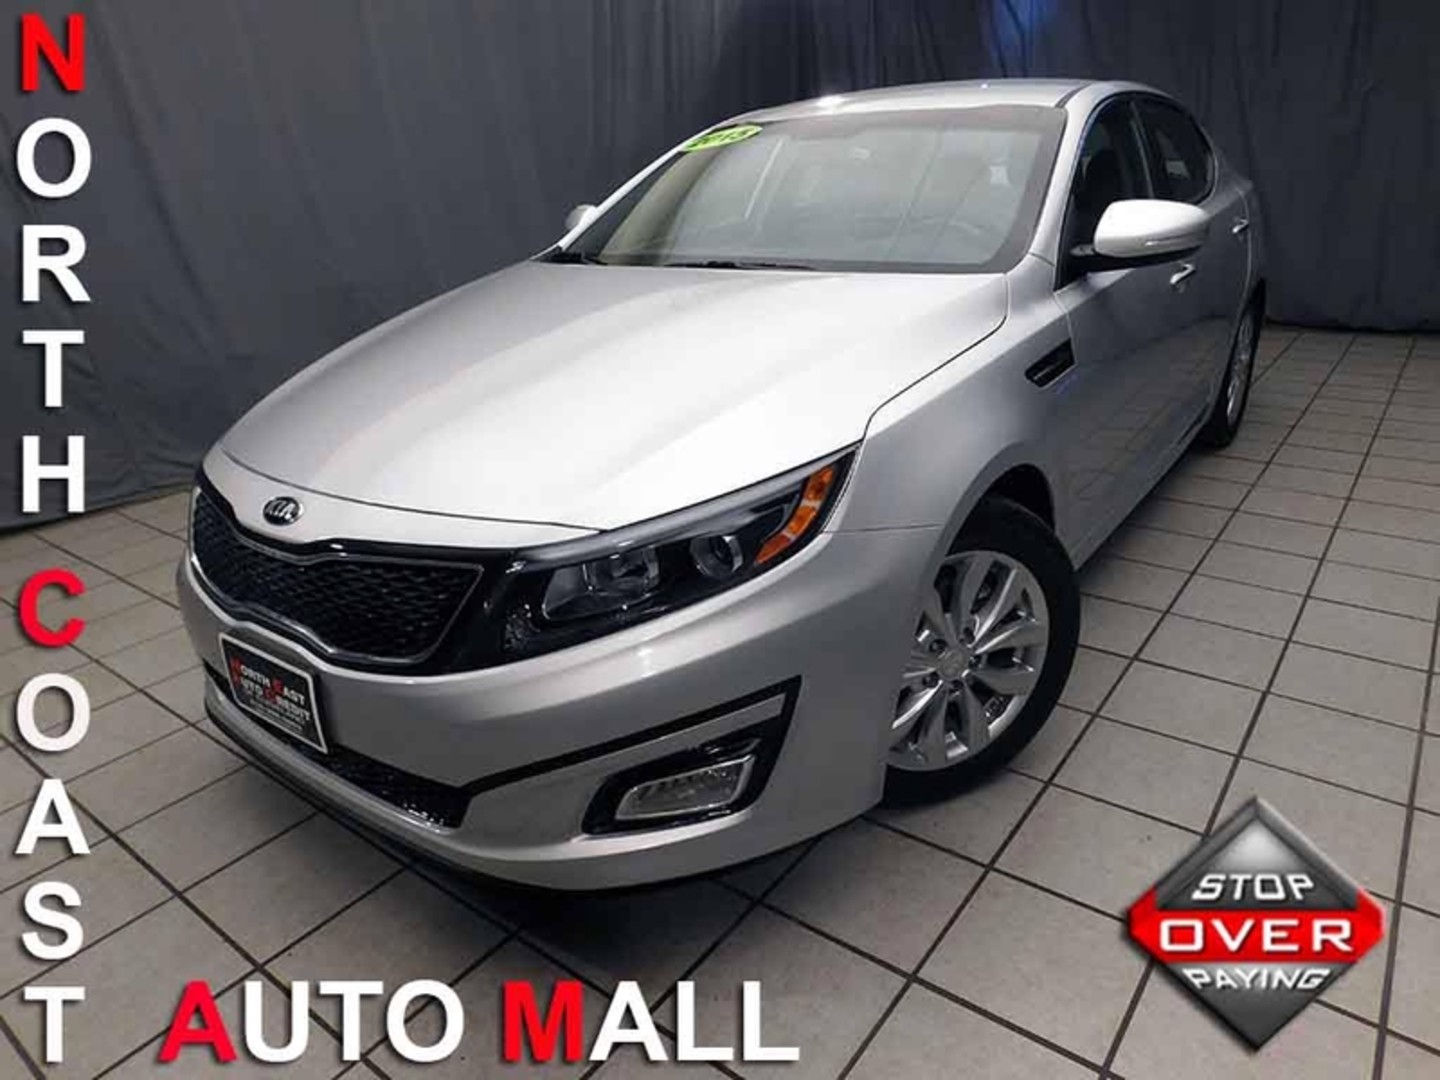 2015 kia optima ex city ohio north coast auto mall of cleveland. Black Bedroom Furniture Sets. Home Design Ideas